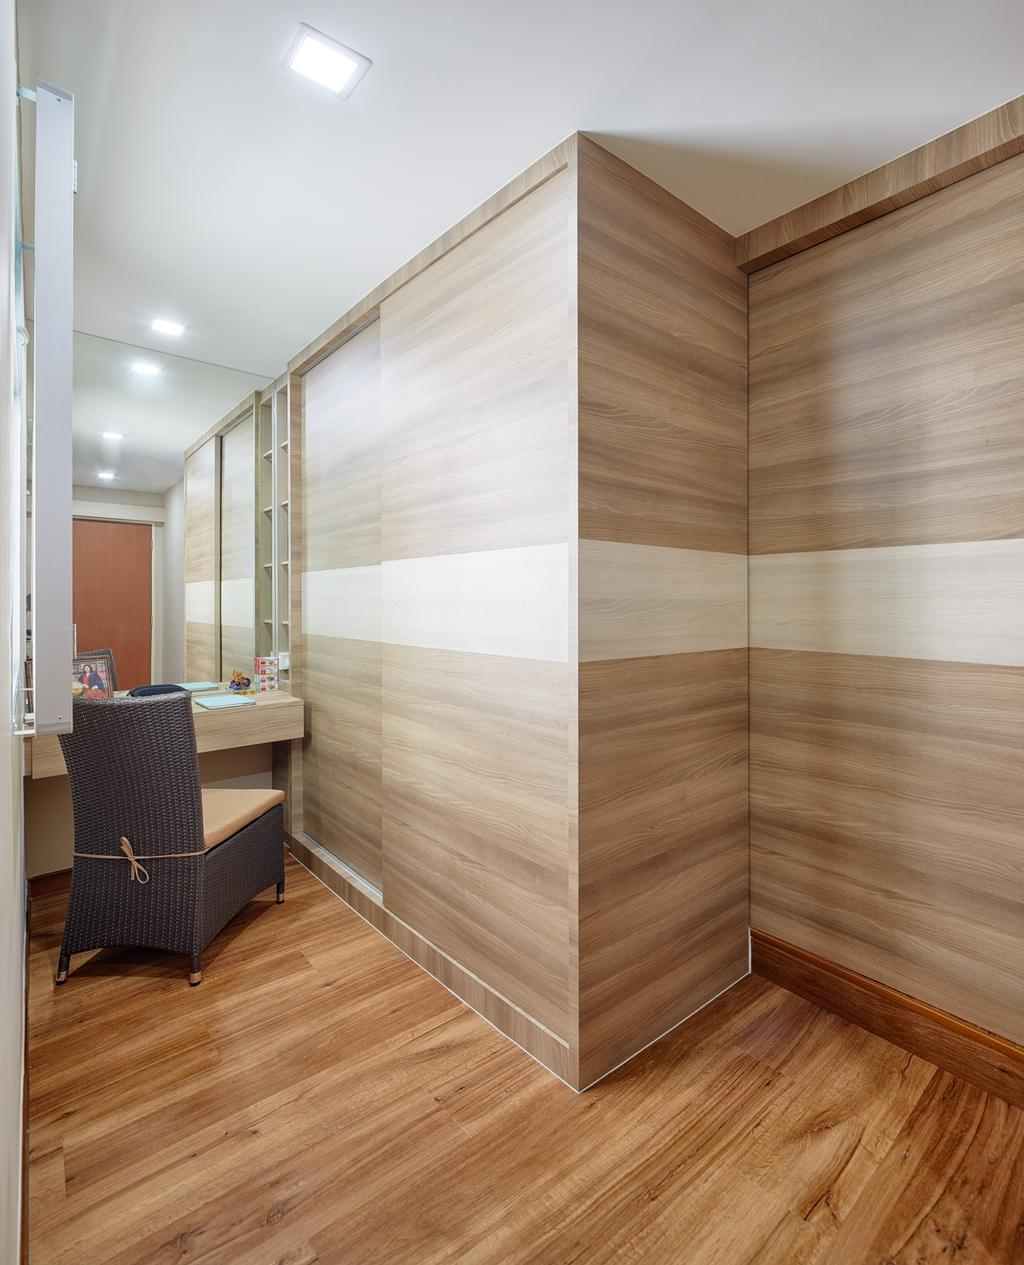 Modern, HDB, Bedroom, Tree Trail at Woodlands, Interior Designer, Absolook Interior Design, Wooden Floor, Wooden Wall, Recessed Lights, Mirror, Lounge Chair, Wall Mounted Wooden Table, Chair, Furniture, Plywood, Wood